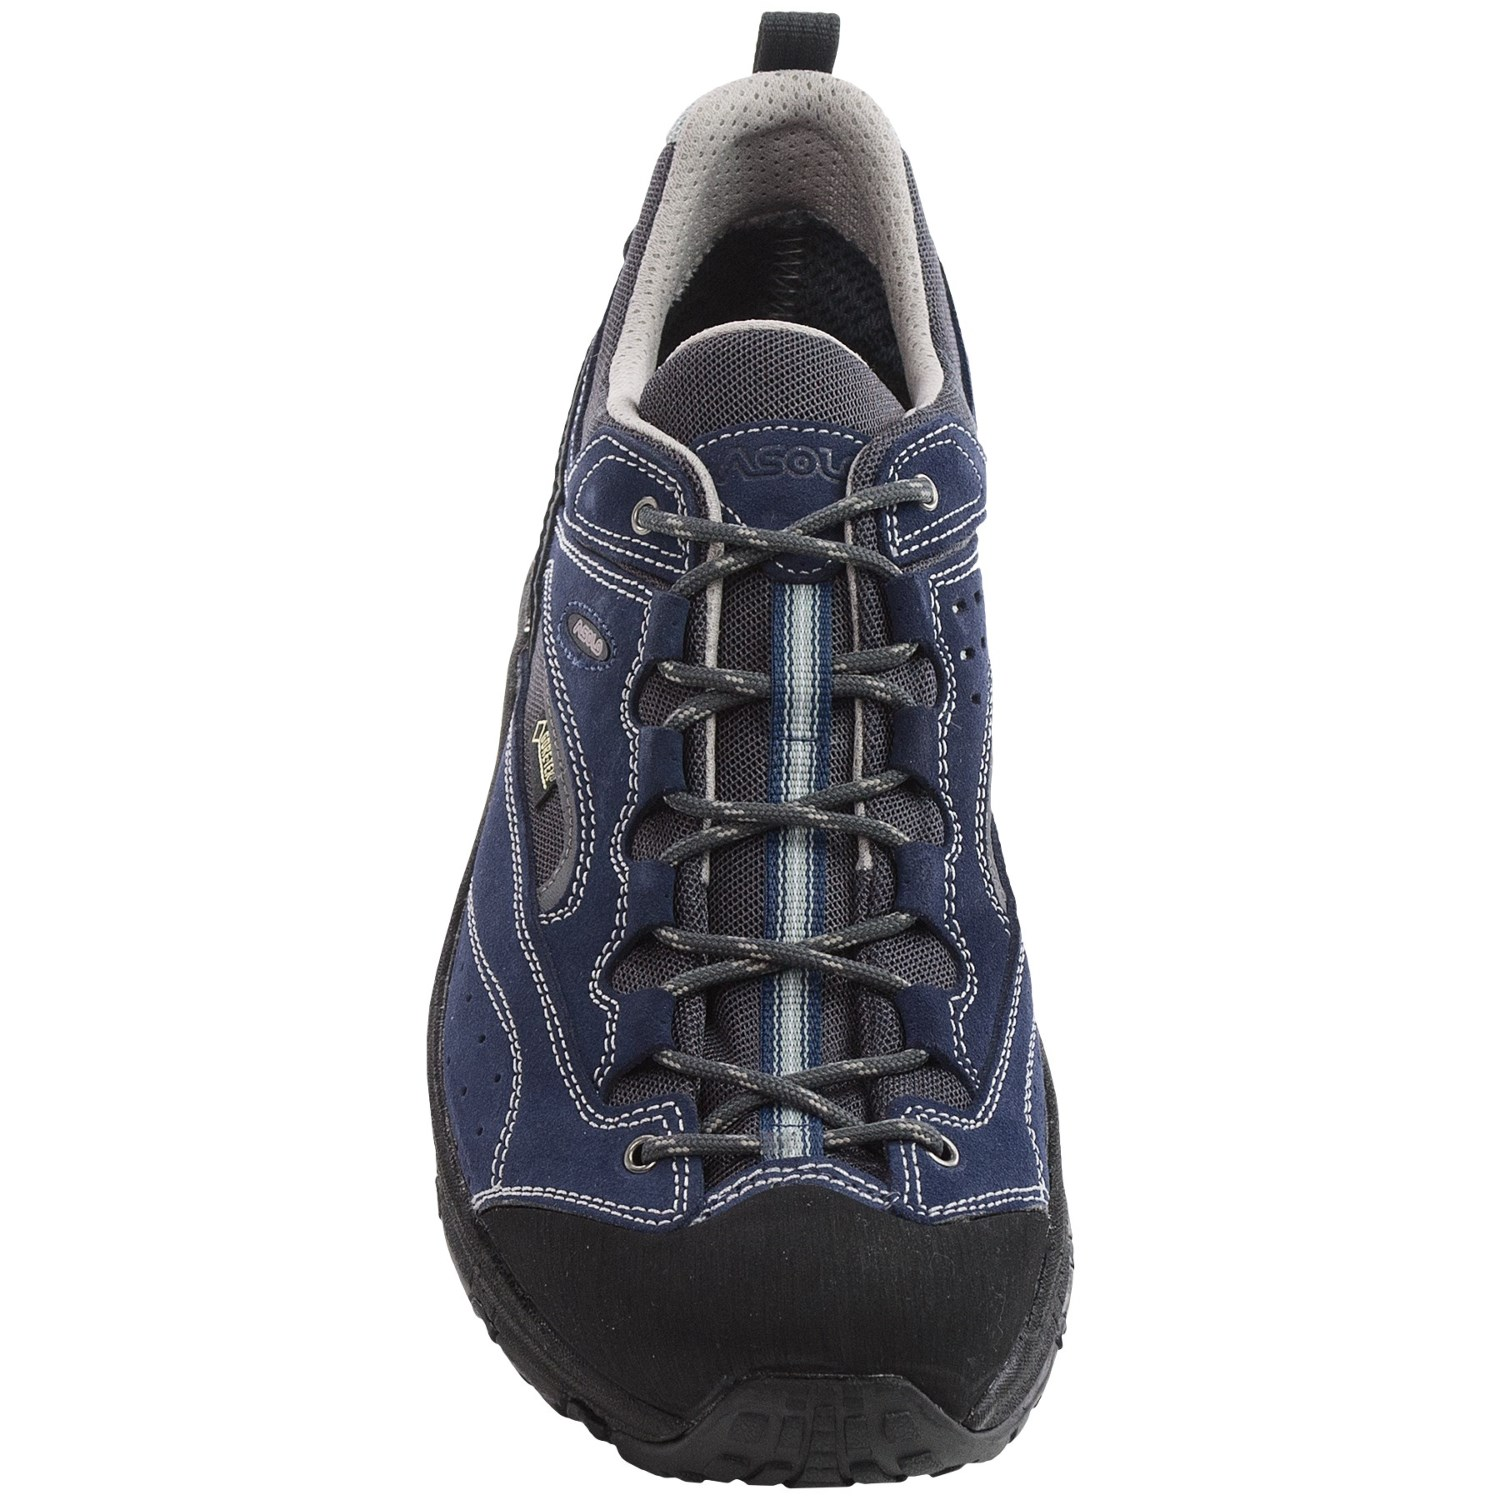 Asolo Bionic Gore Tex Approach Shoes Review